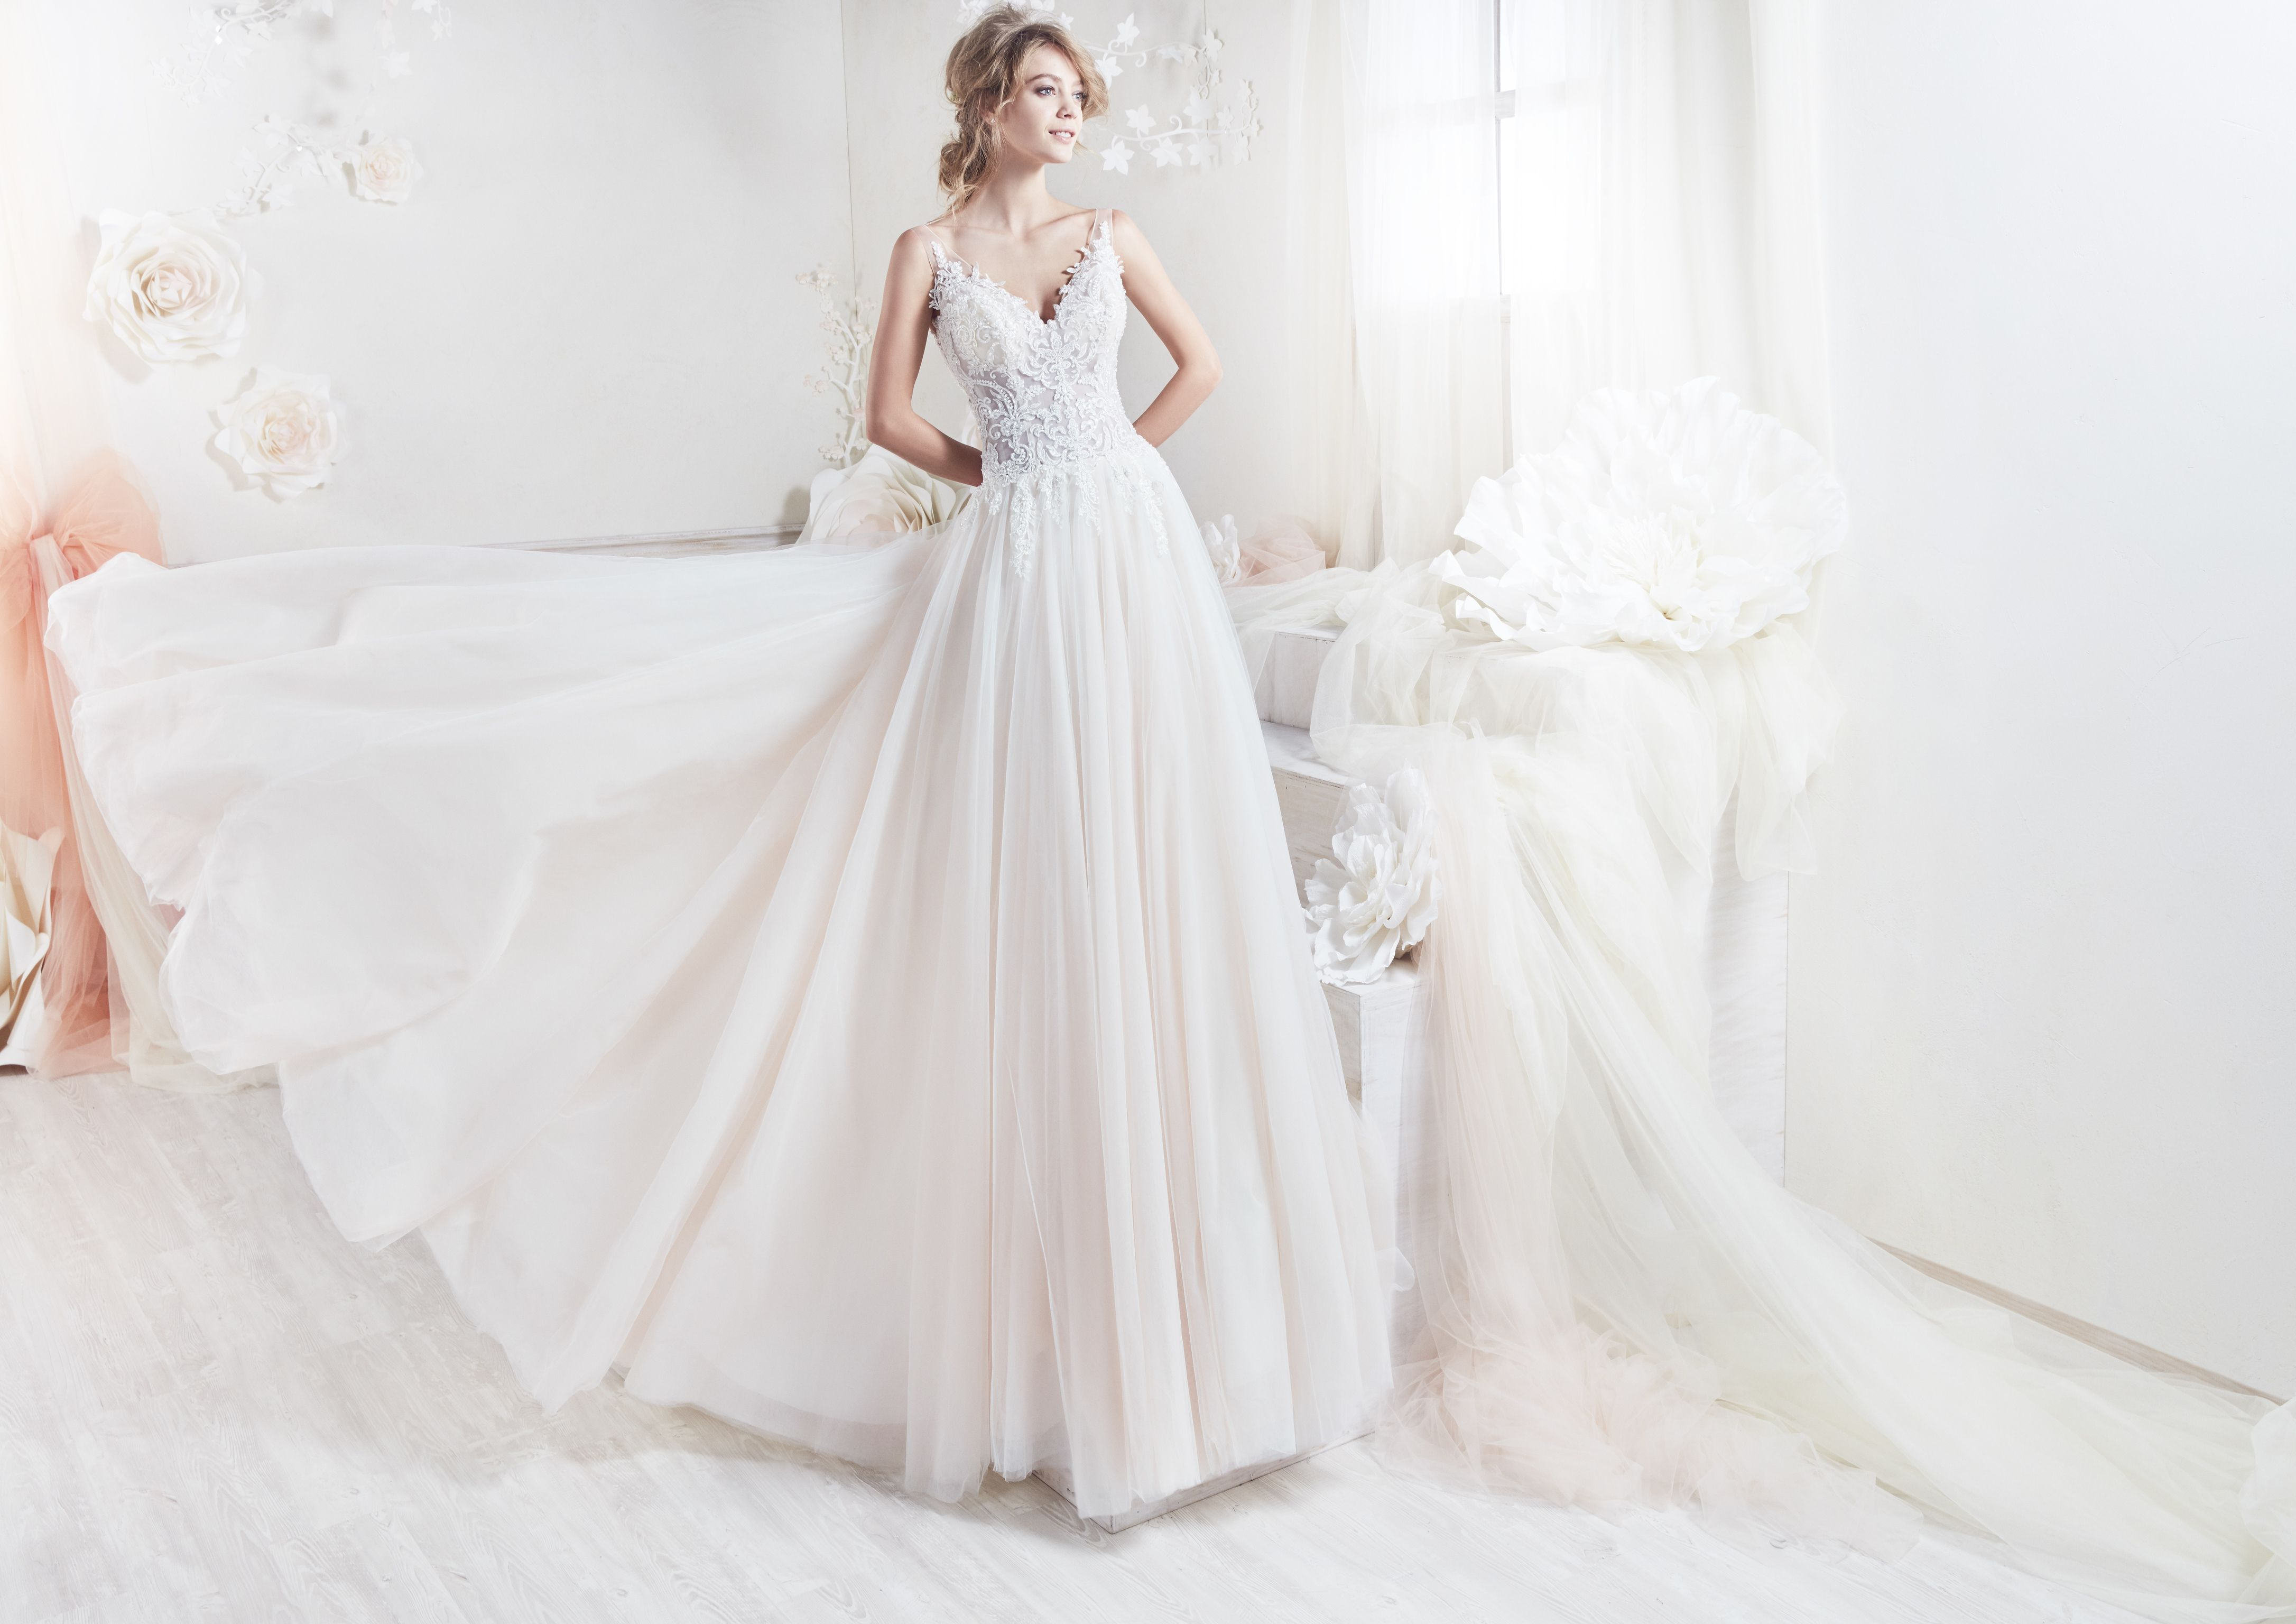 44++ Rustic lace wedding dress for sale information